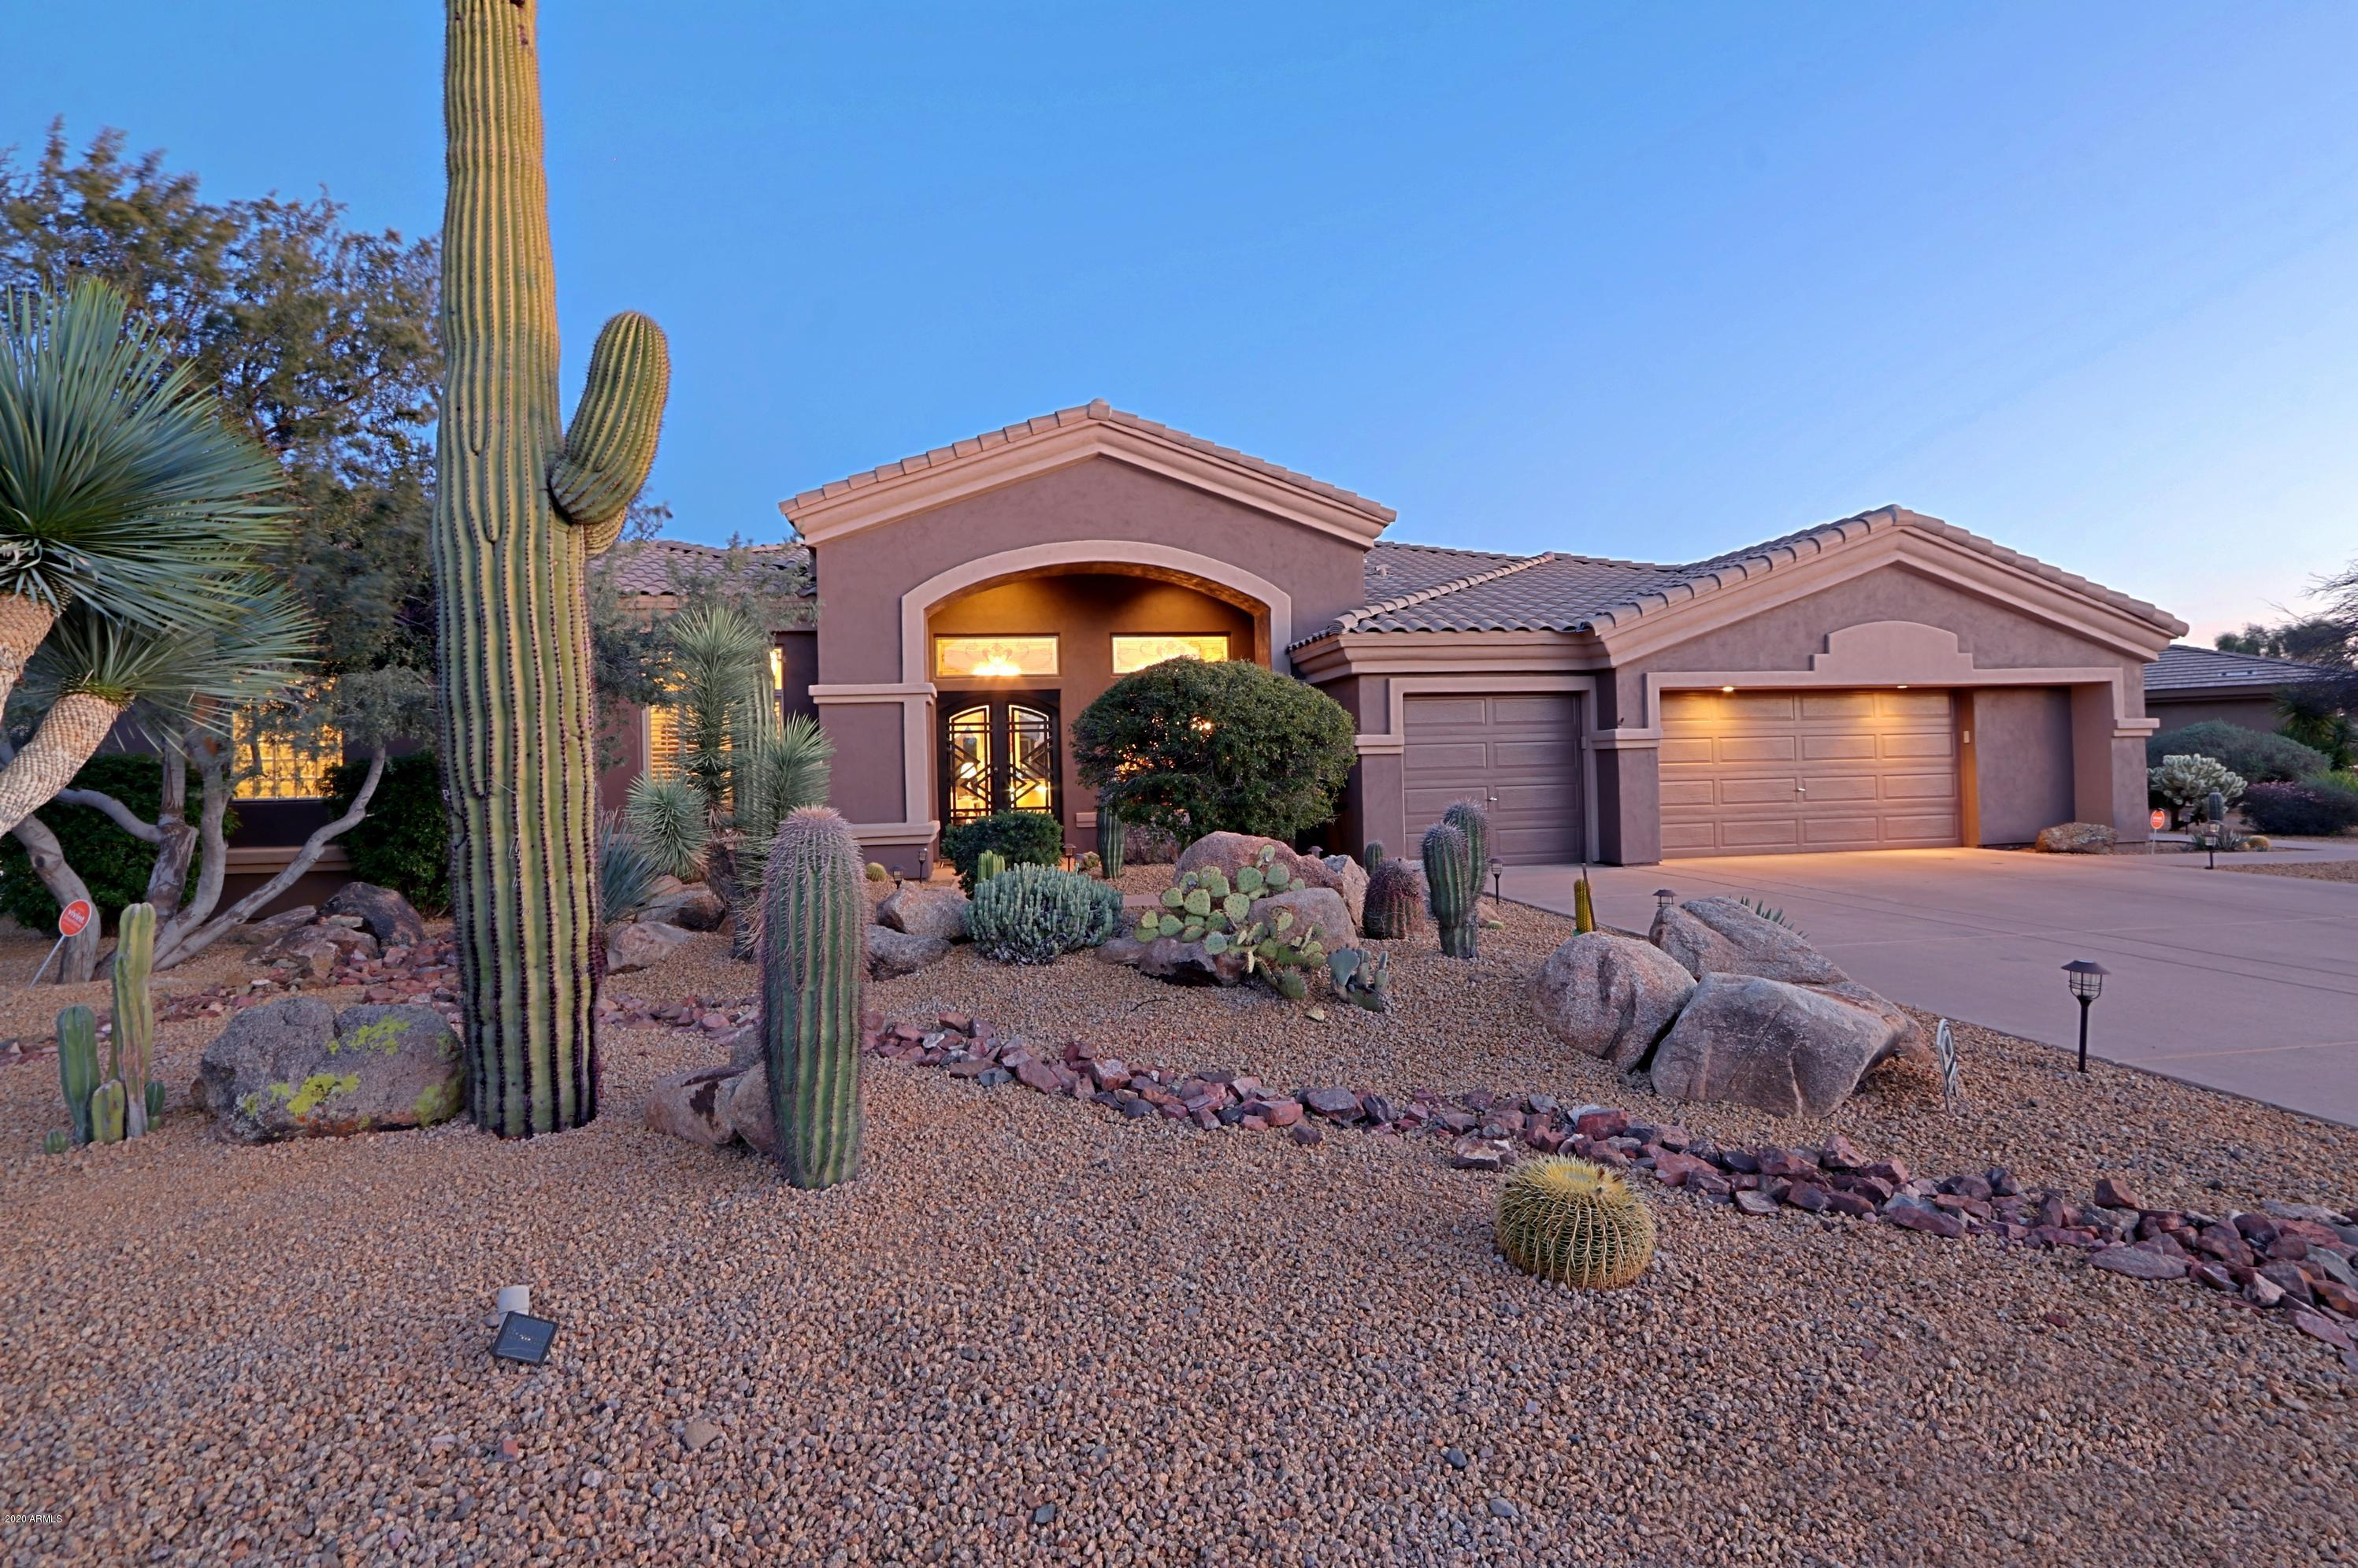 Photo of 9771 E ROADRUNNER Drive, Scottsdale, AZ 85262